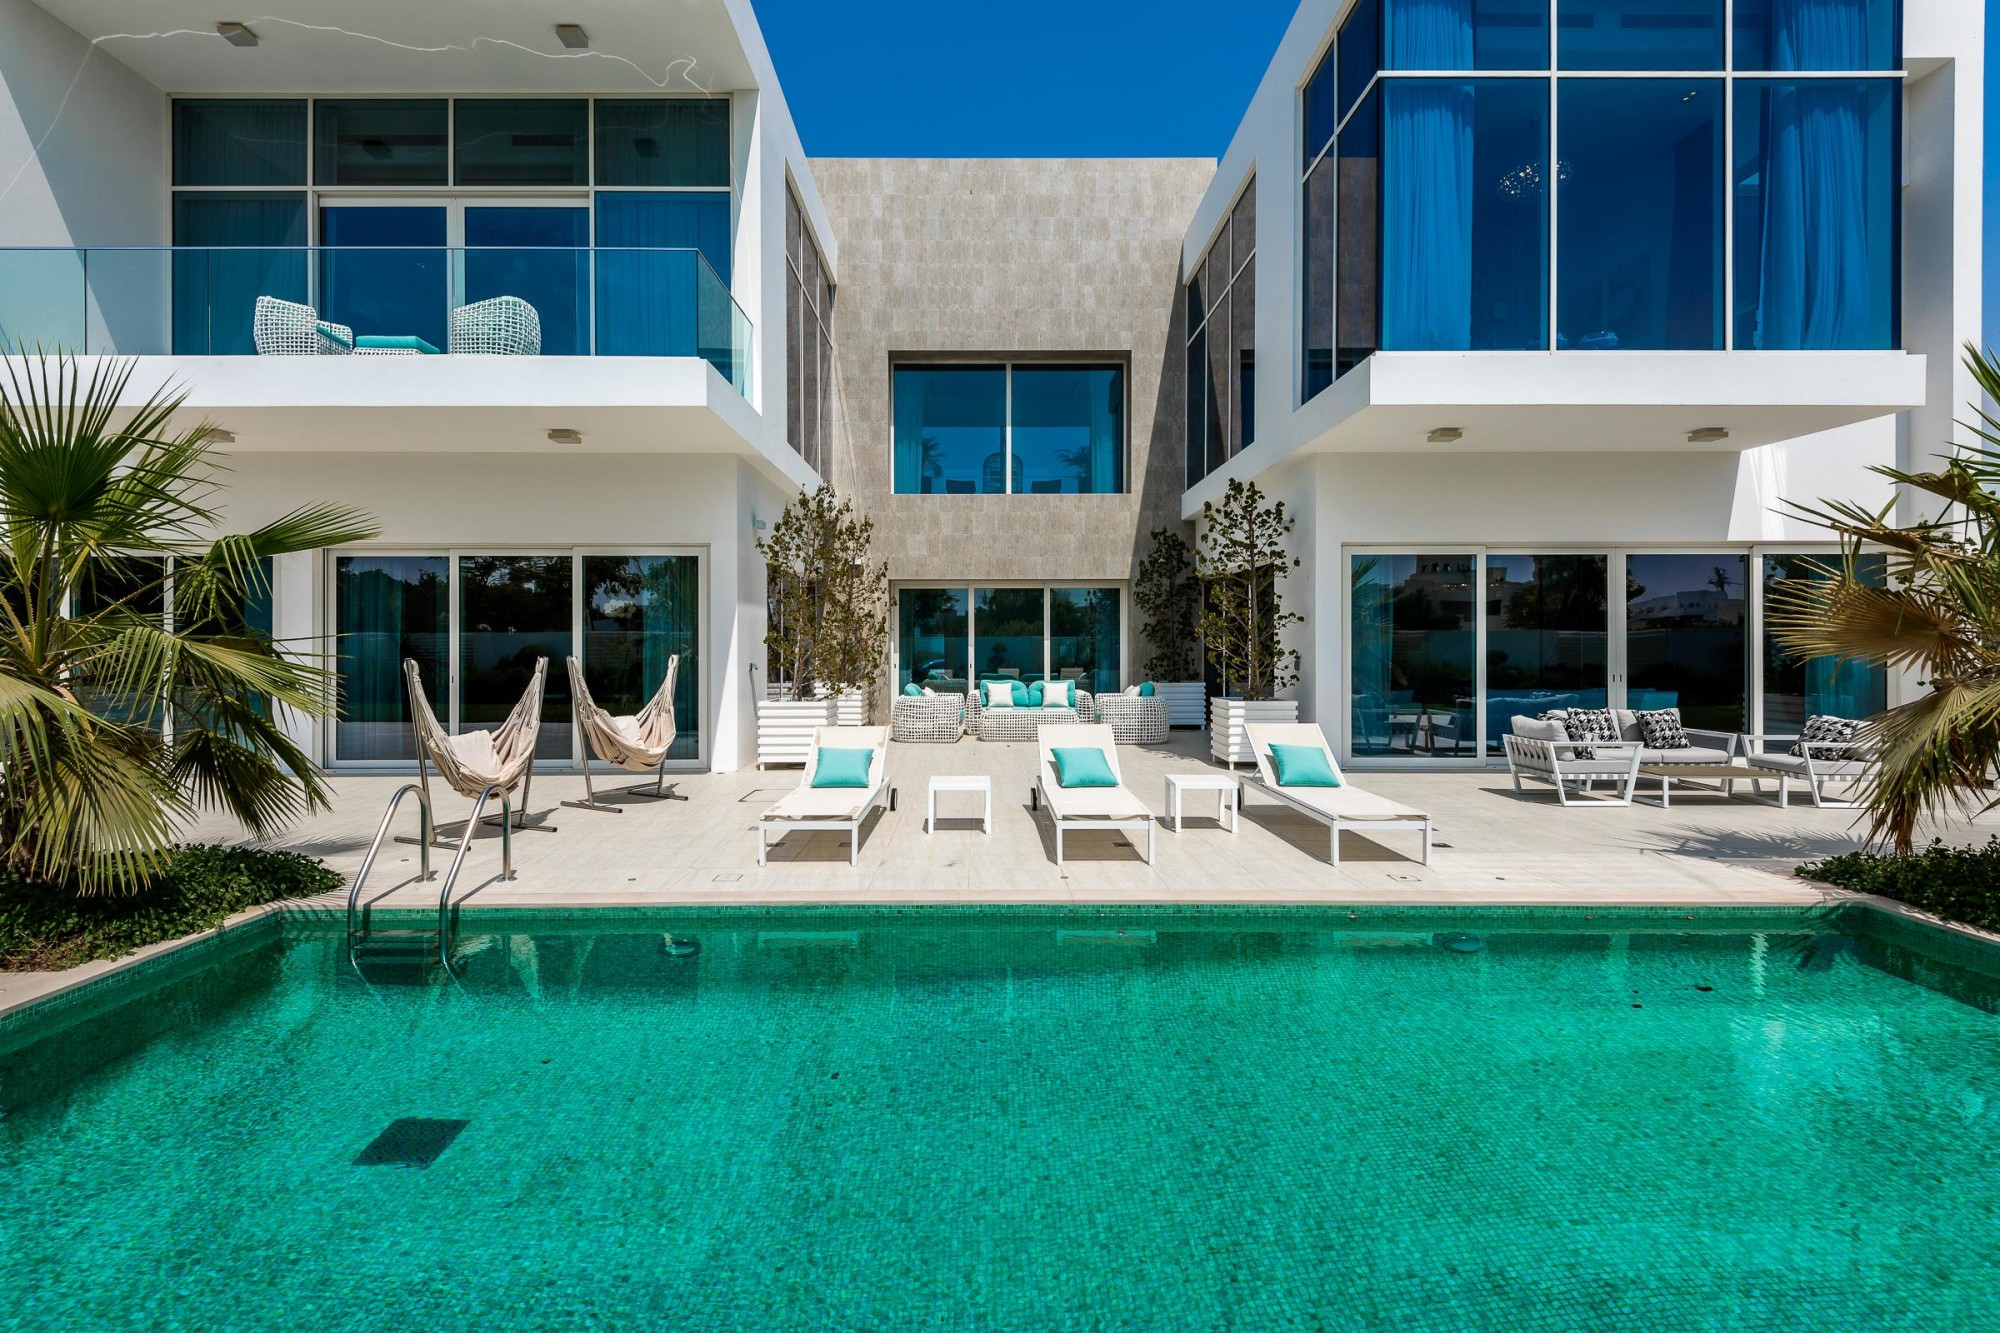 Unfurnished | Contemporary Luxury Villa | Vacant